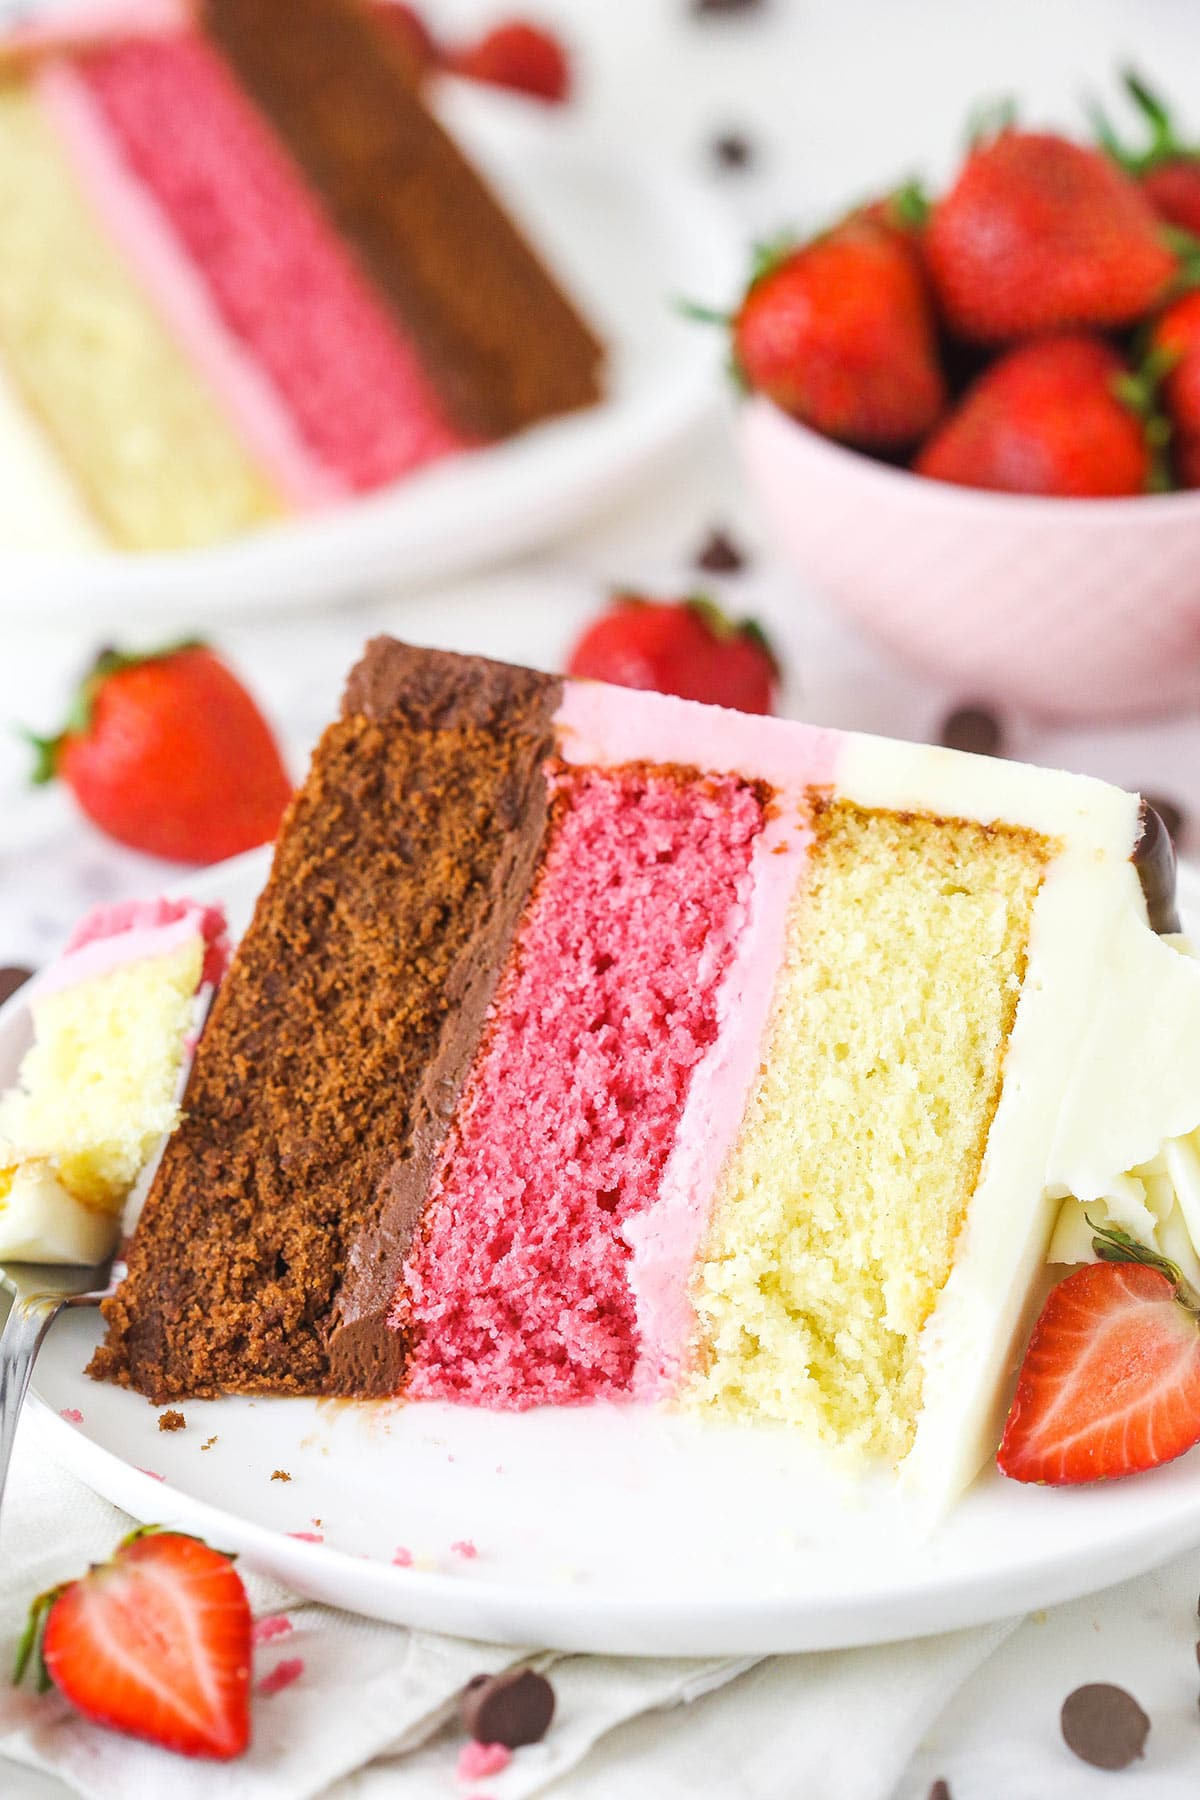 A piece of neapolitan cake on a plate with a big bite taken out spanning all the layers